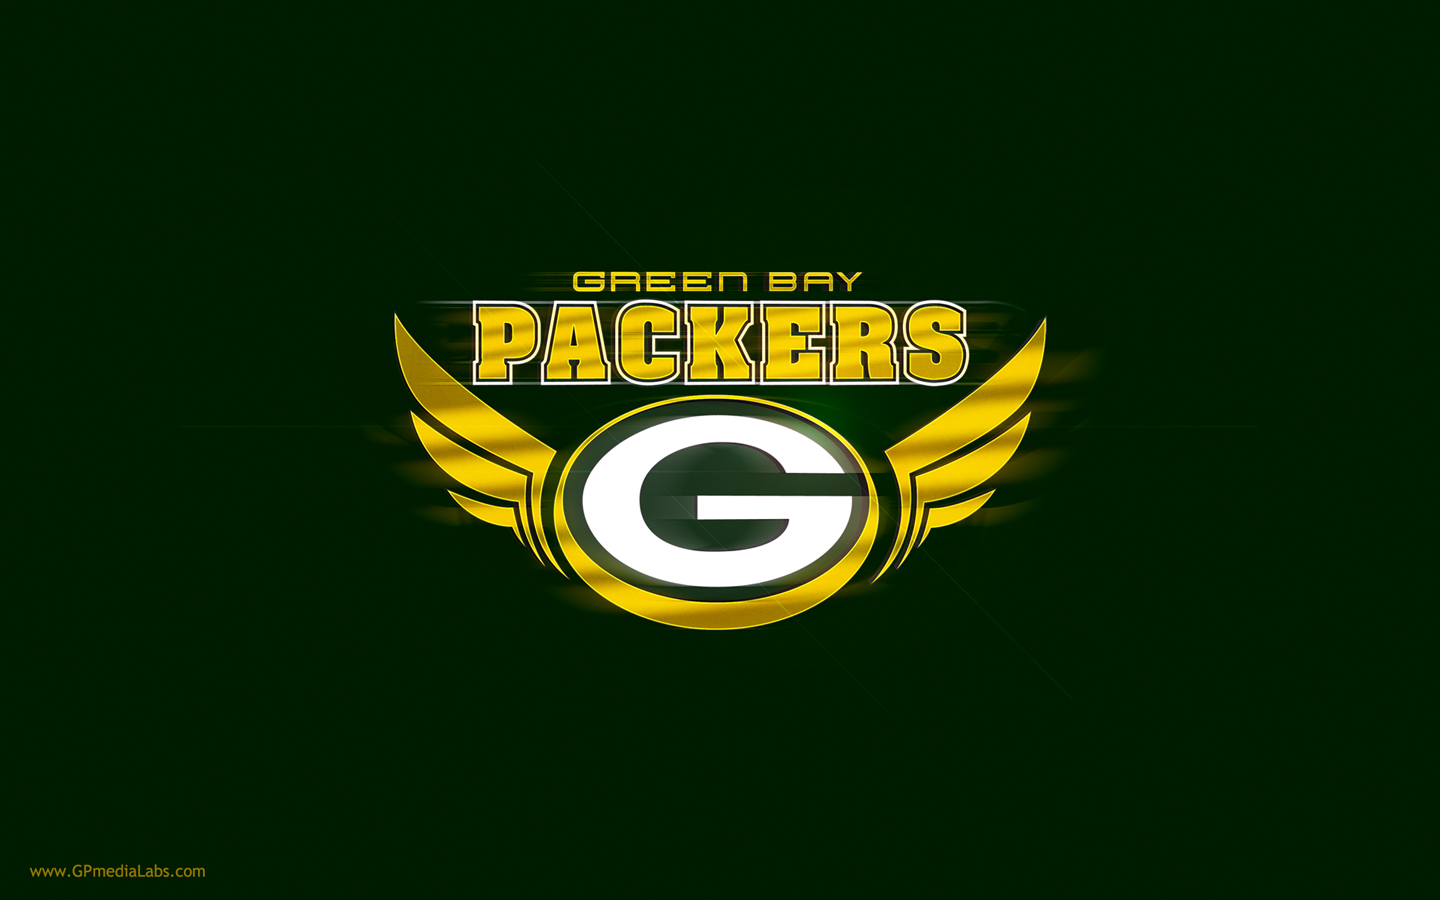 Bay Packers wallpaper HD background Green Bay Packers wallpapers 1440x900